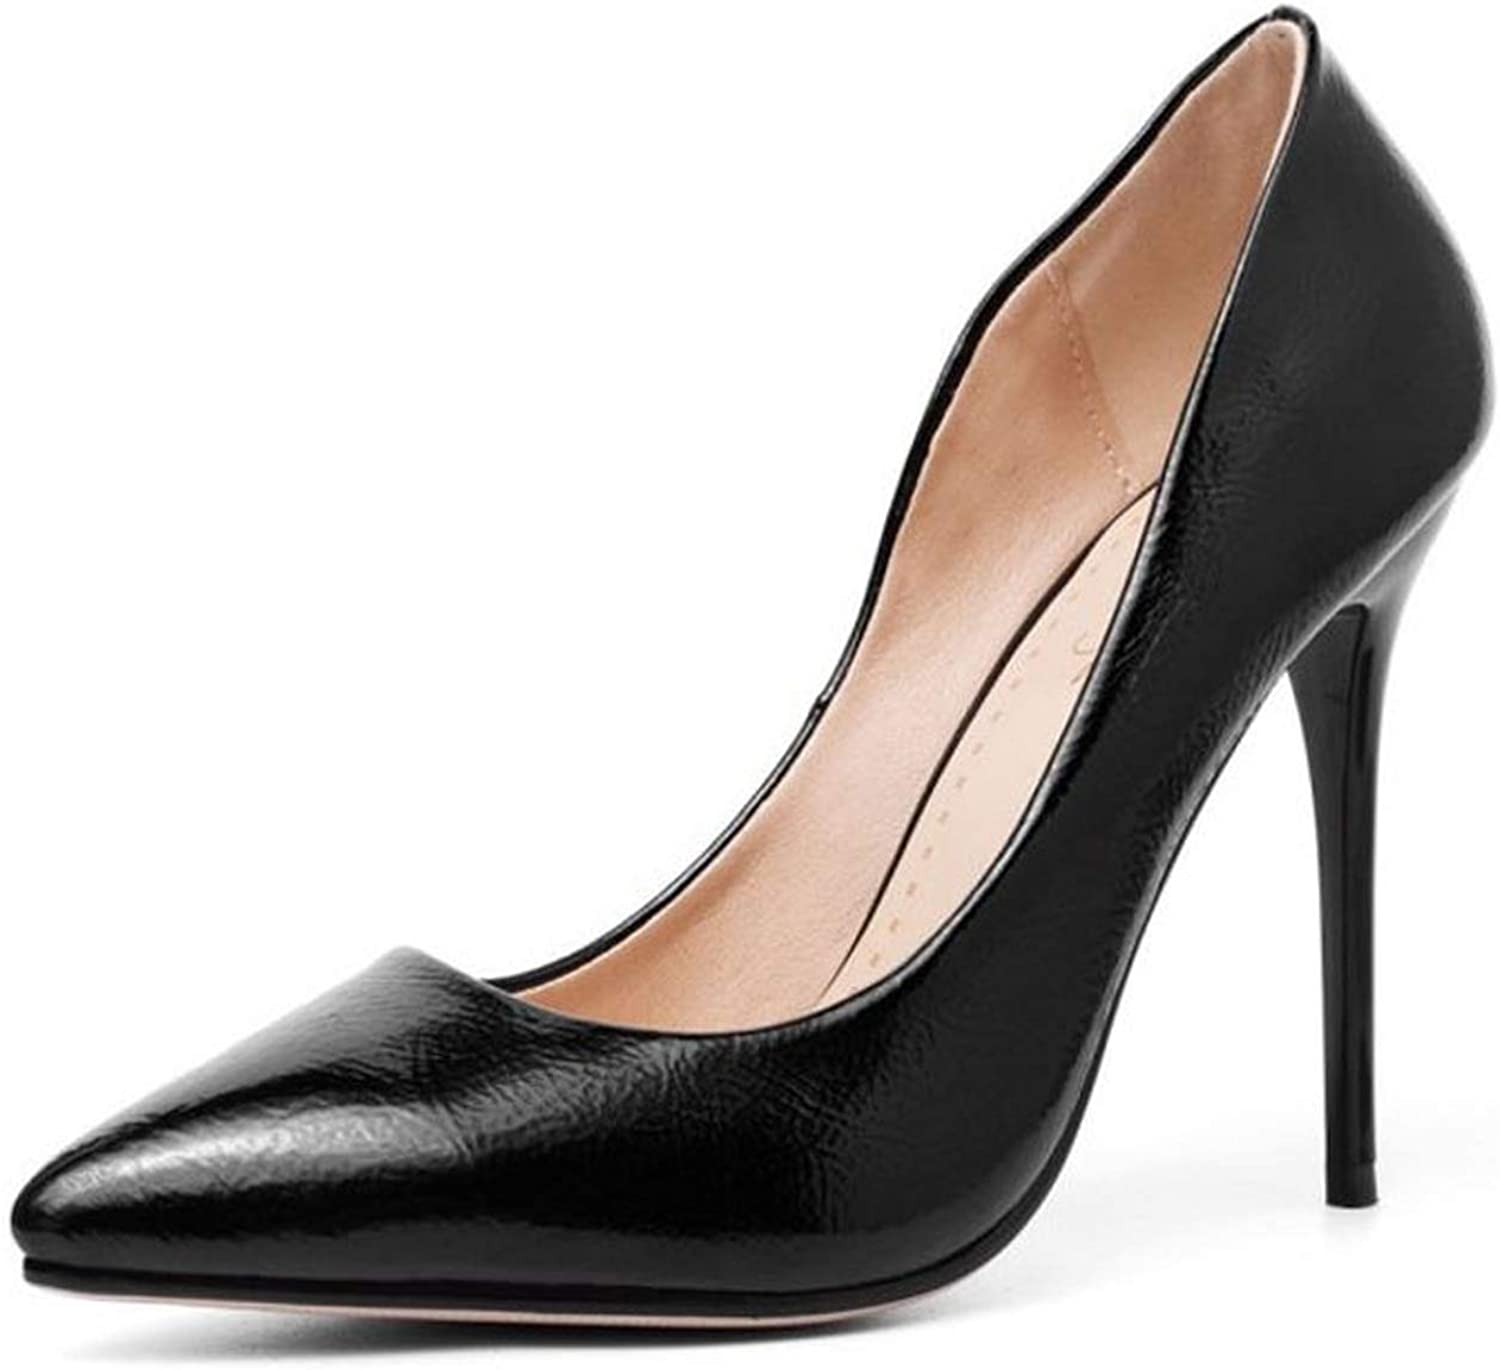 Sunny Doll 2019 Heels shoes Women Pointed Toe Thin Heels shoes Office Ladies Party Pumps